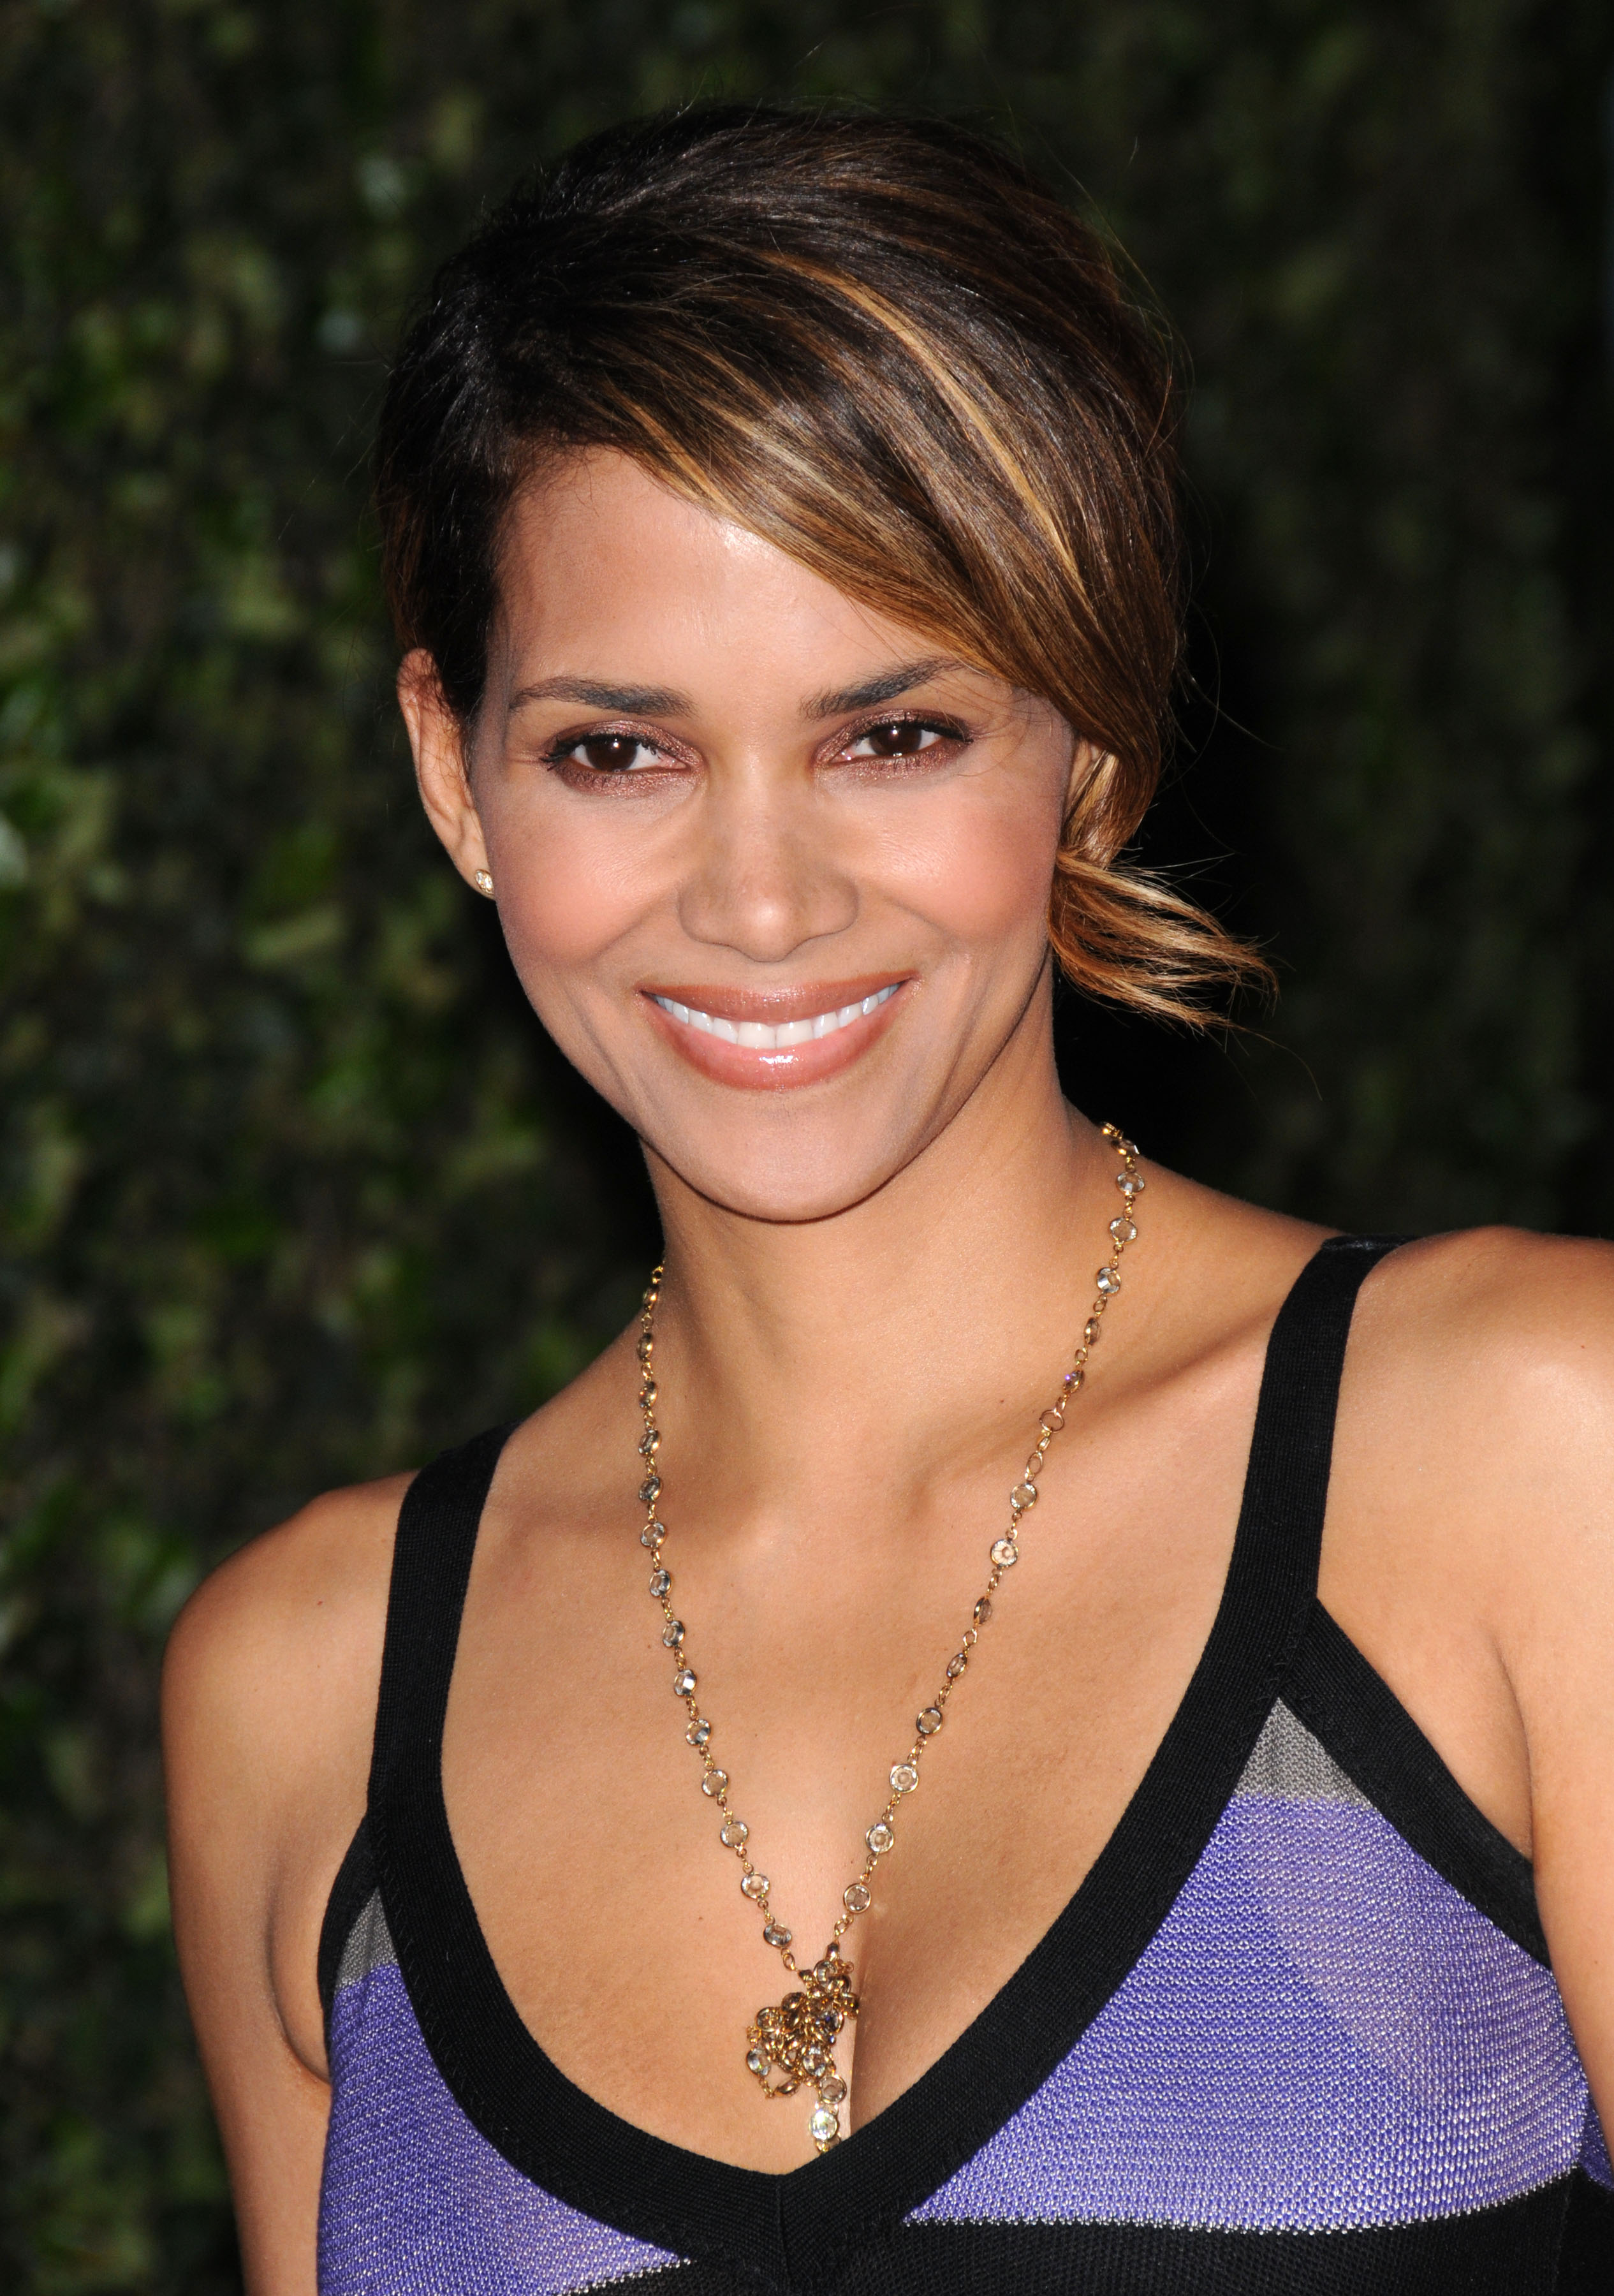 69716_Halle_Berry_The_Soloist_premiere_in_Los_Angeles_89_122_120lo.jpg